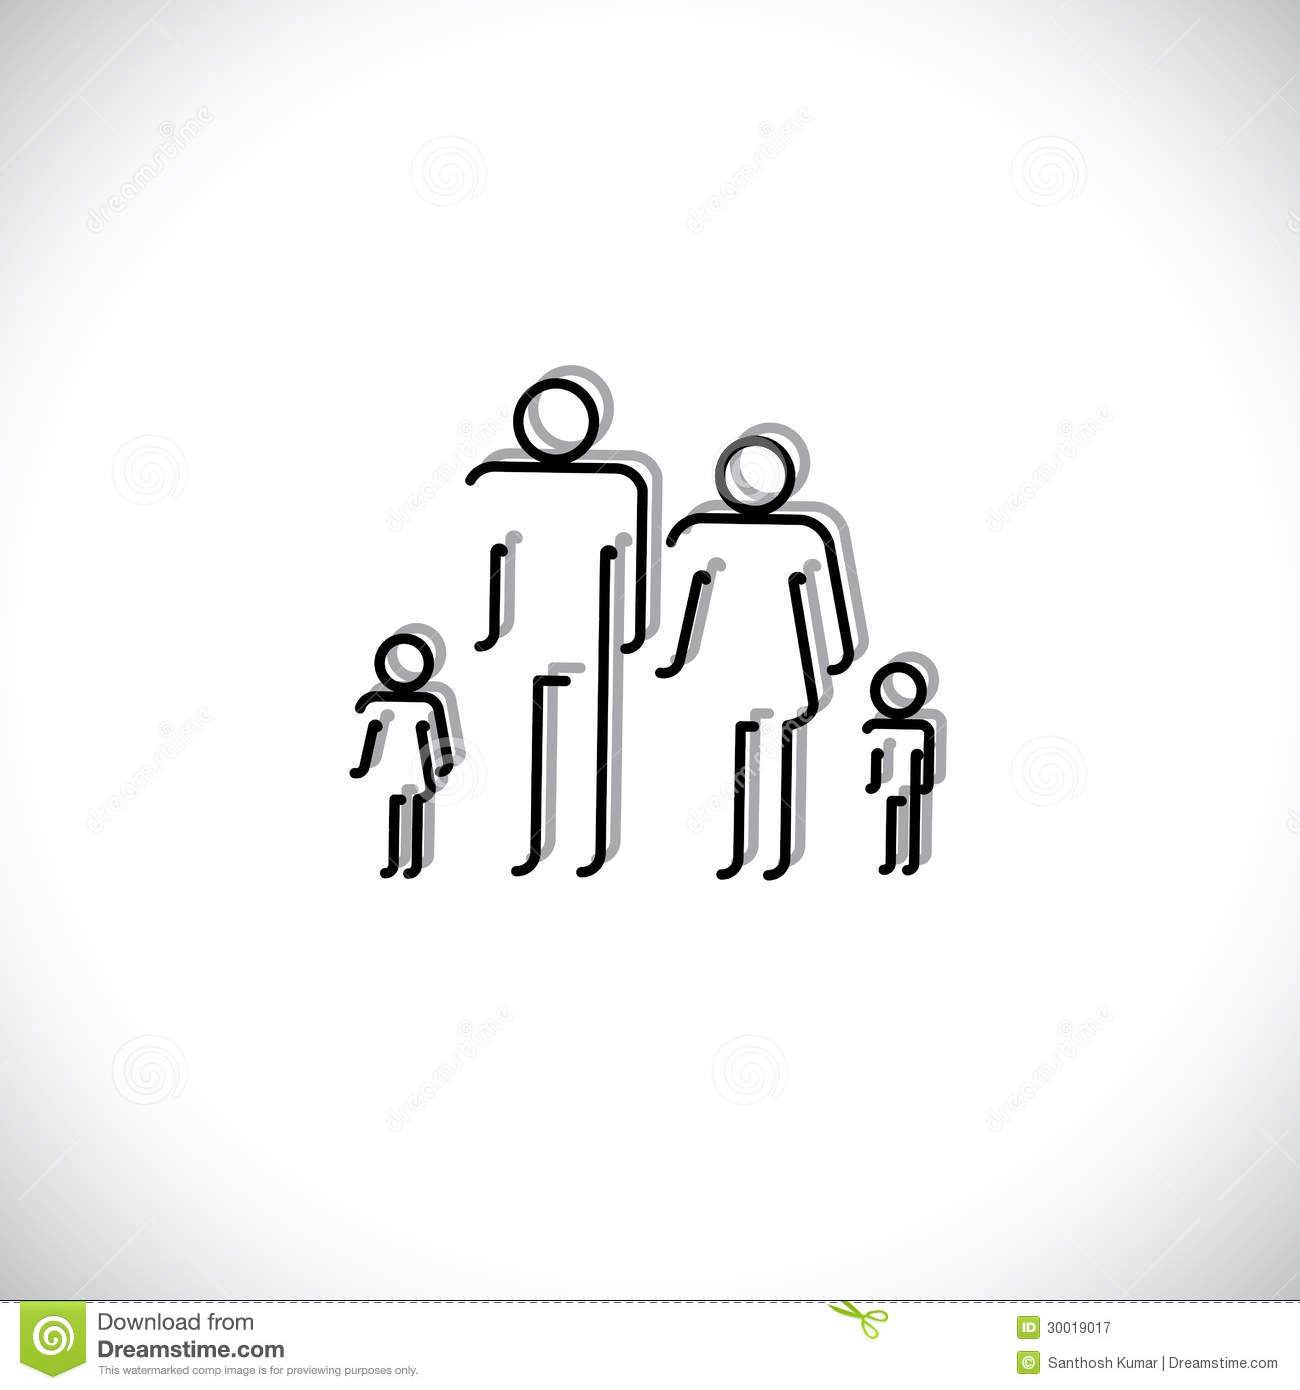 Family of four people abstract icons using line drawing stock royalty free stock photo biocorpaavc